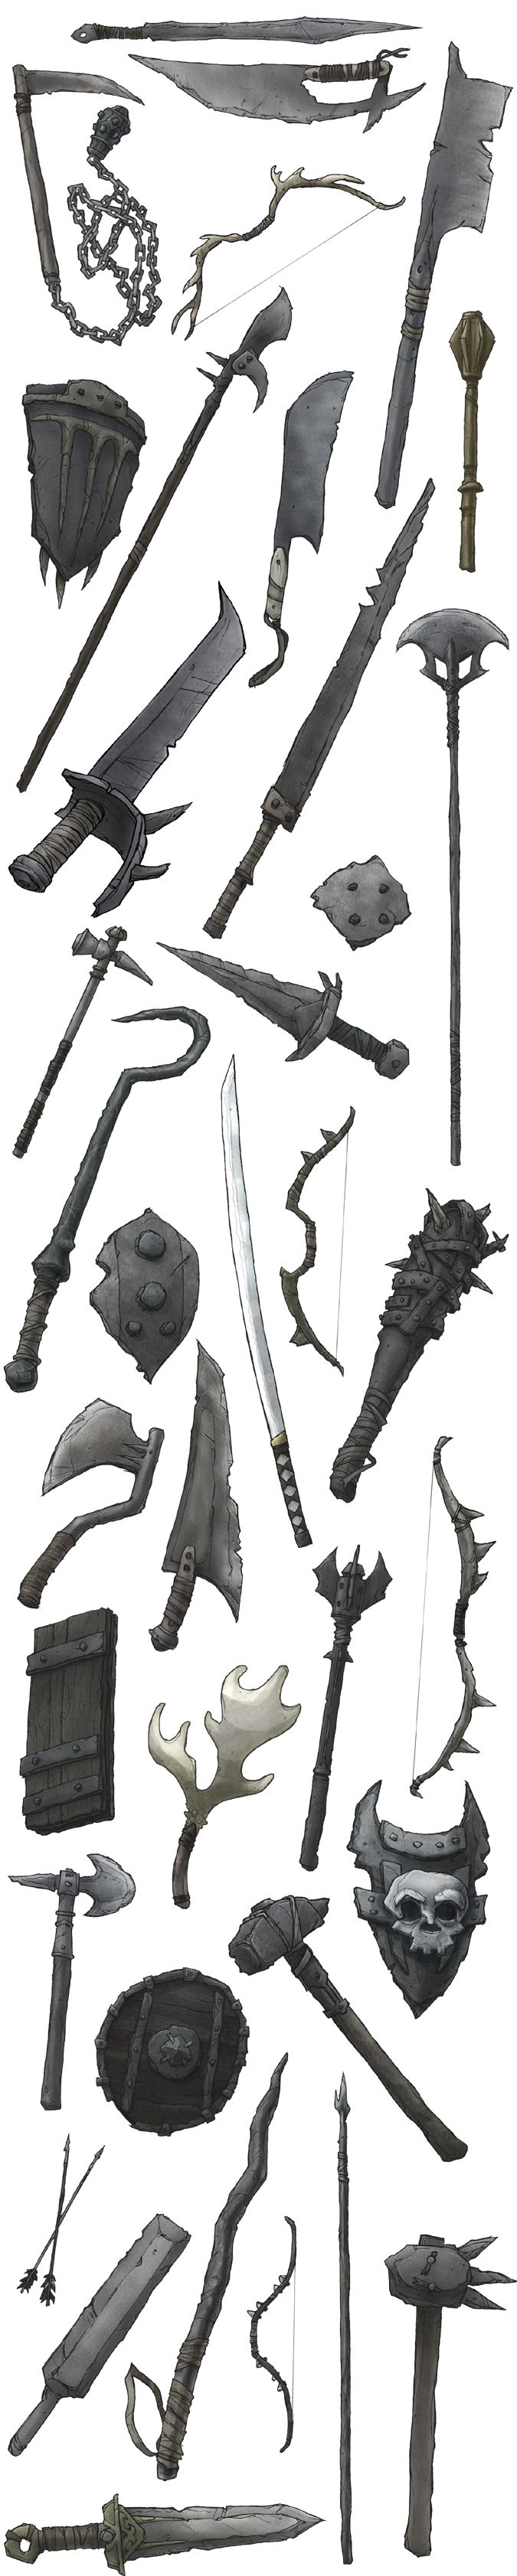 asst weapons by ~jimmymcwicked on deviantART   ★    CHARACTER DESIGN REFERENCES™ (https://www.facebook.com/CharacterDesignReferences & https://www.pinterest.com/characterdesigh) • Love Character Design? Join the #CDChallenge (link→ https://www.facebook.com/groups/CharacterDesignChallenge) Share your unique vision of a theme, promote your art in a community of over 50.000 artists!    ★